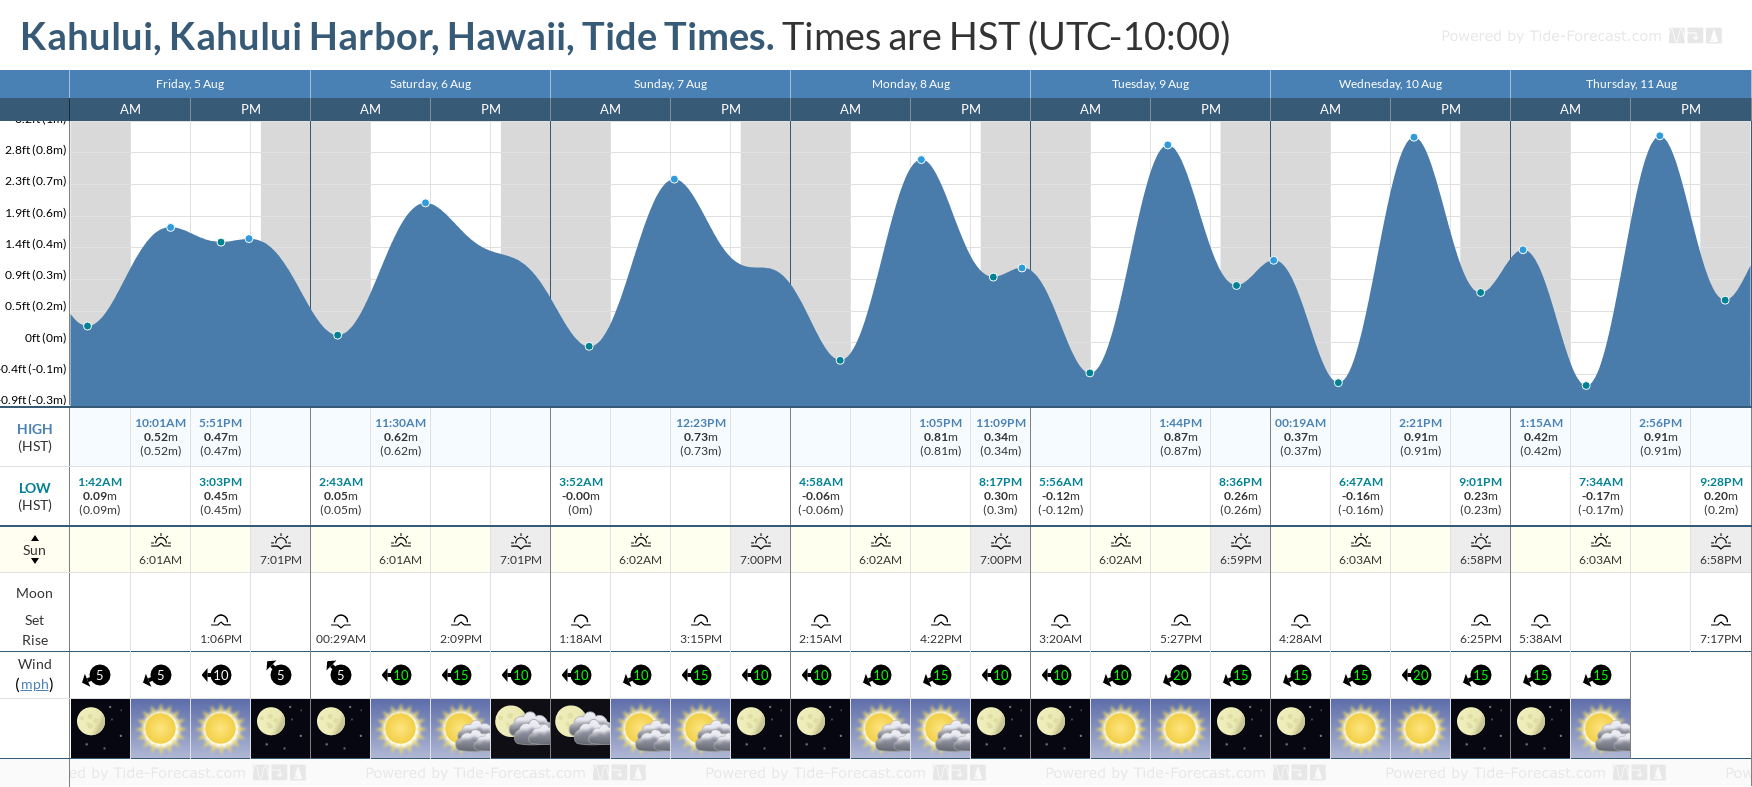 Kahului, Kahului Harbor, Hawaii Tide Chart including high and low tide tide times for the next 7 days